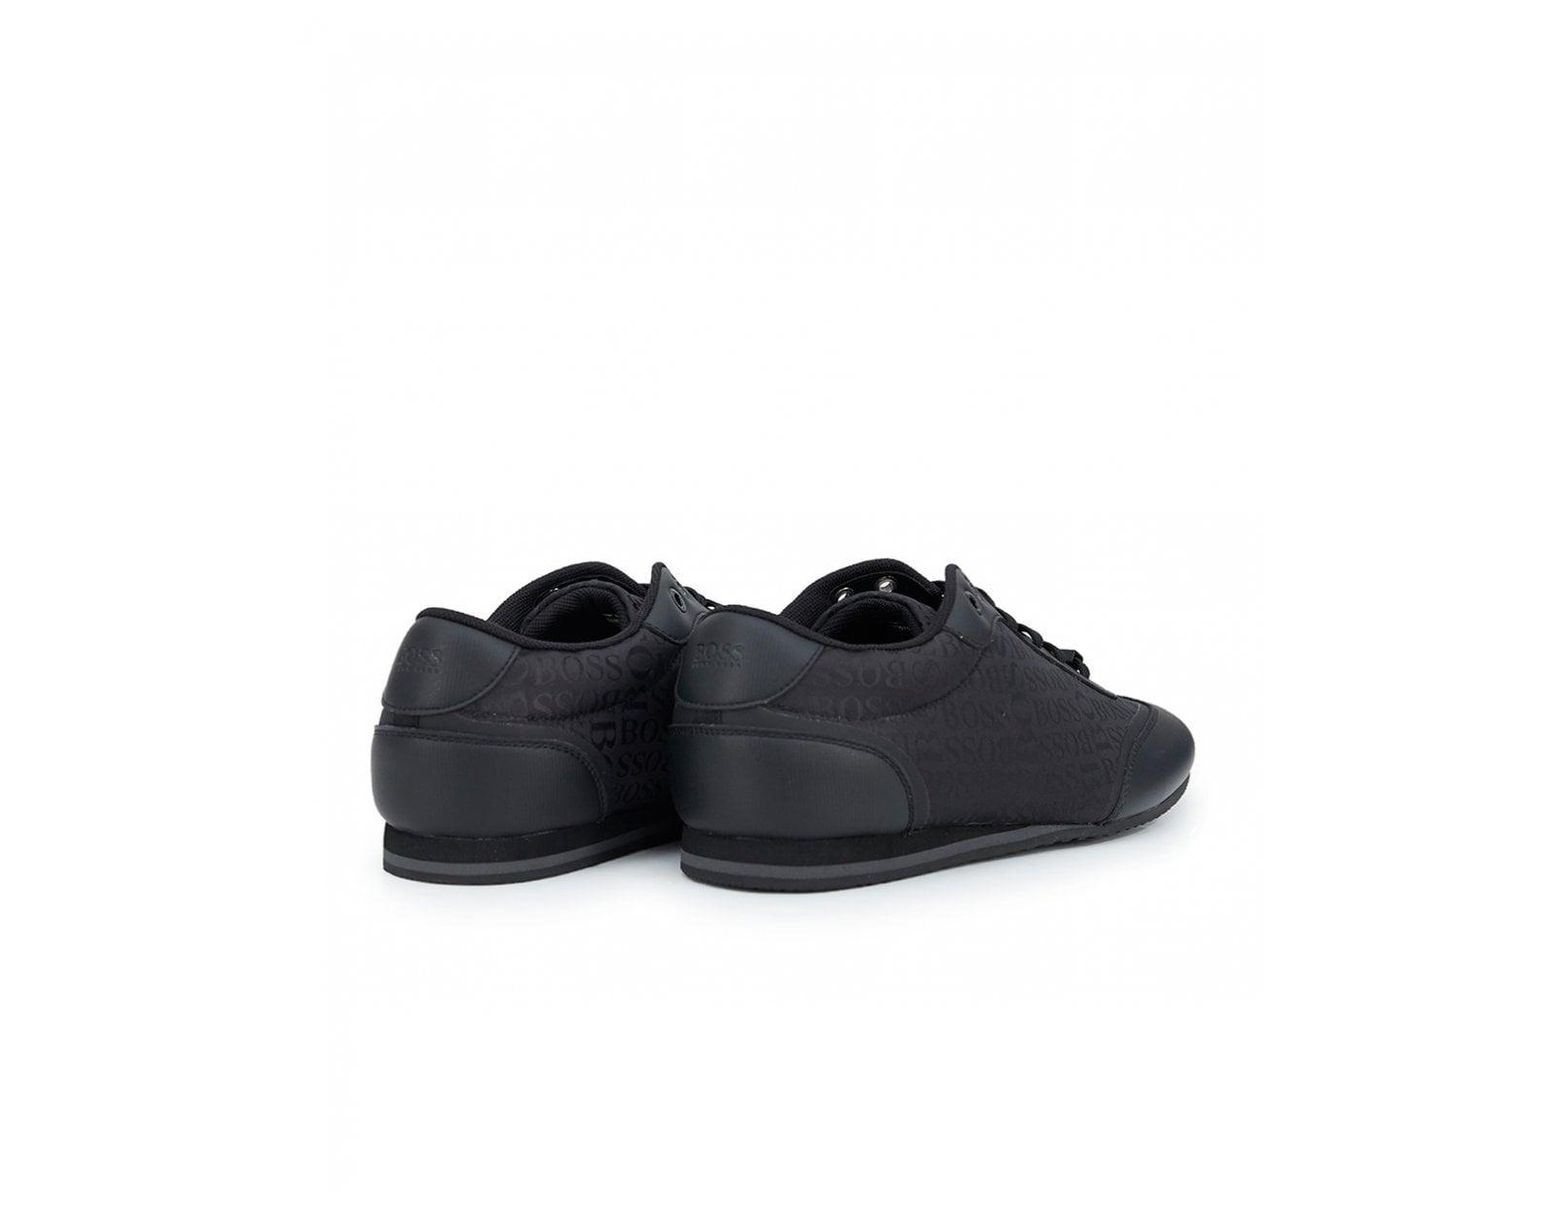 7330465b8 BOSS Lighter Low All Over Logo Trainers in Black for Men - Lyst